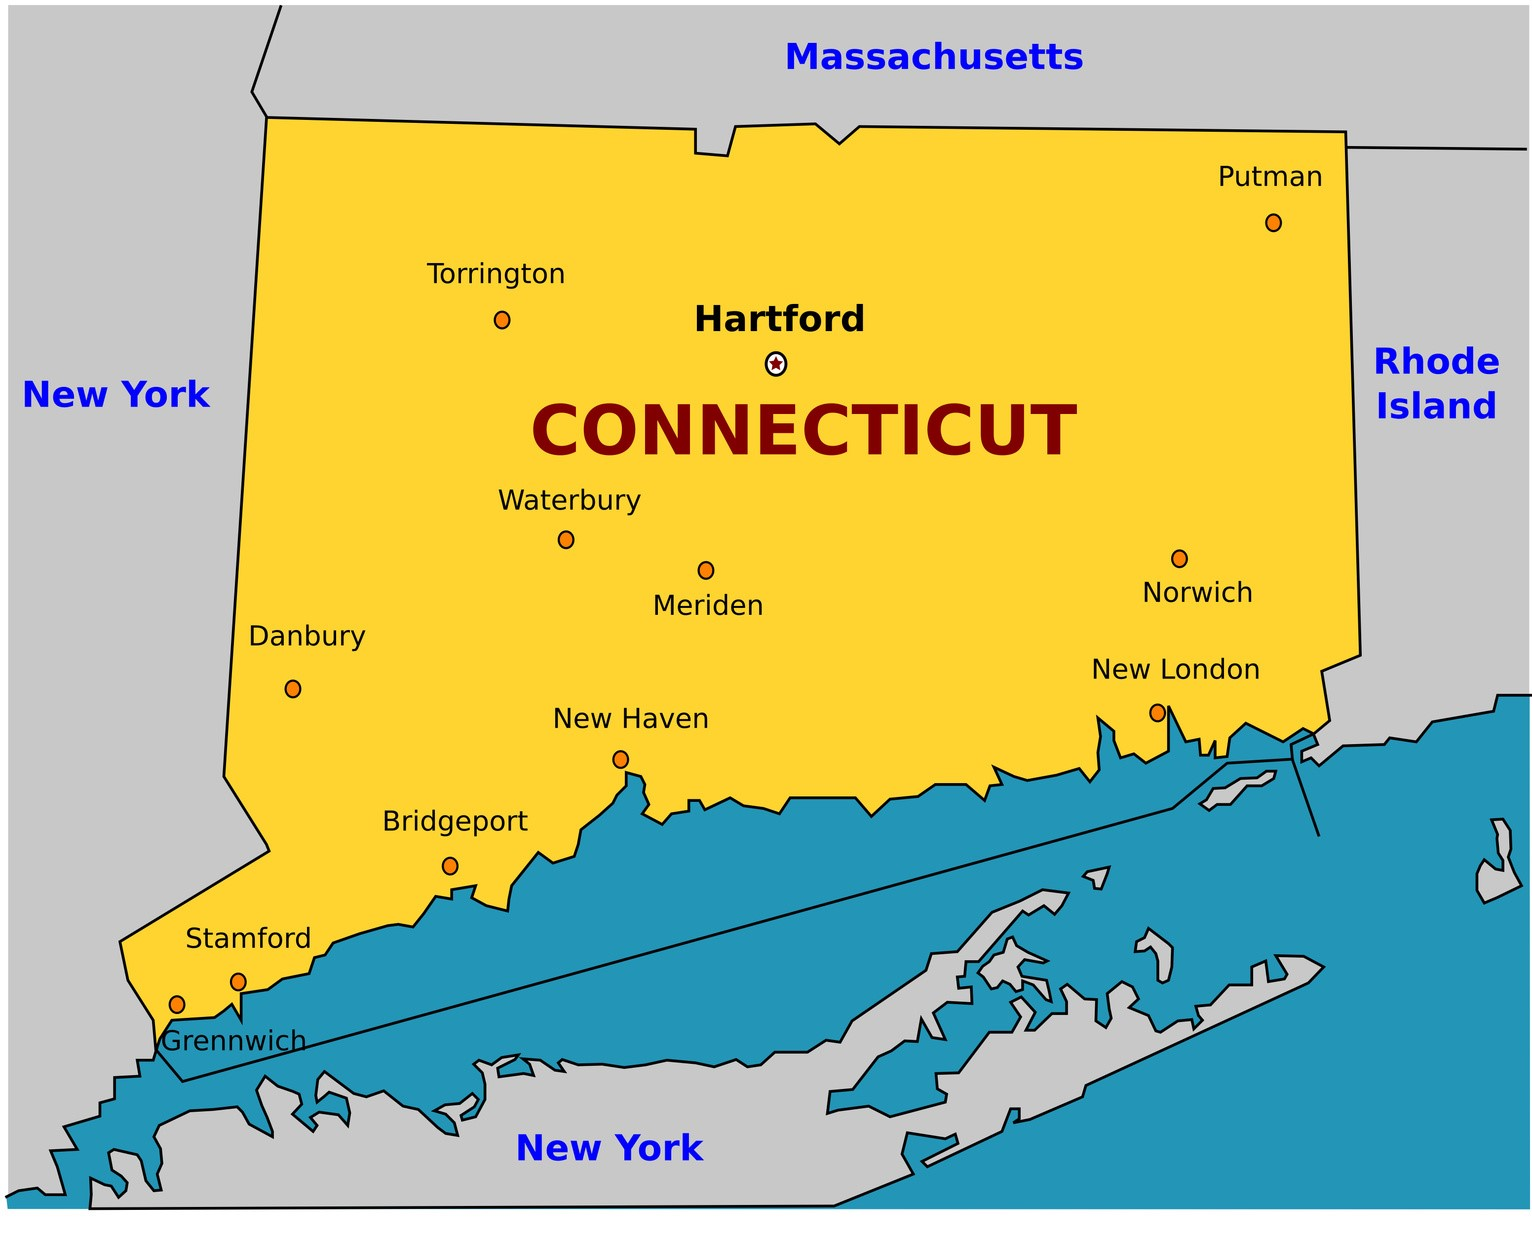 Nanny (live in) for VIP International Family - Greenwich, Ct. - www.butlerforyou.com